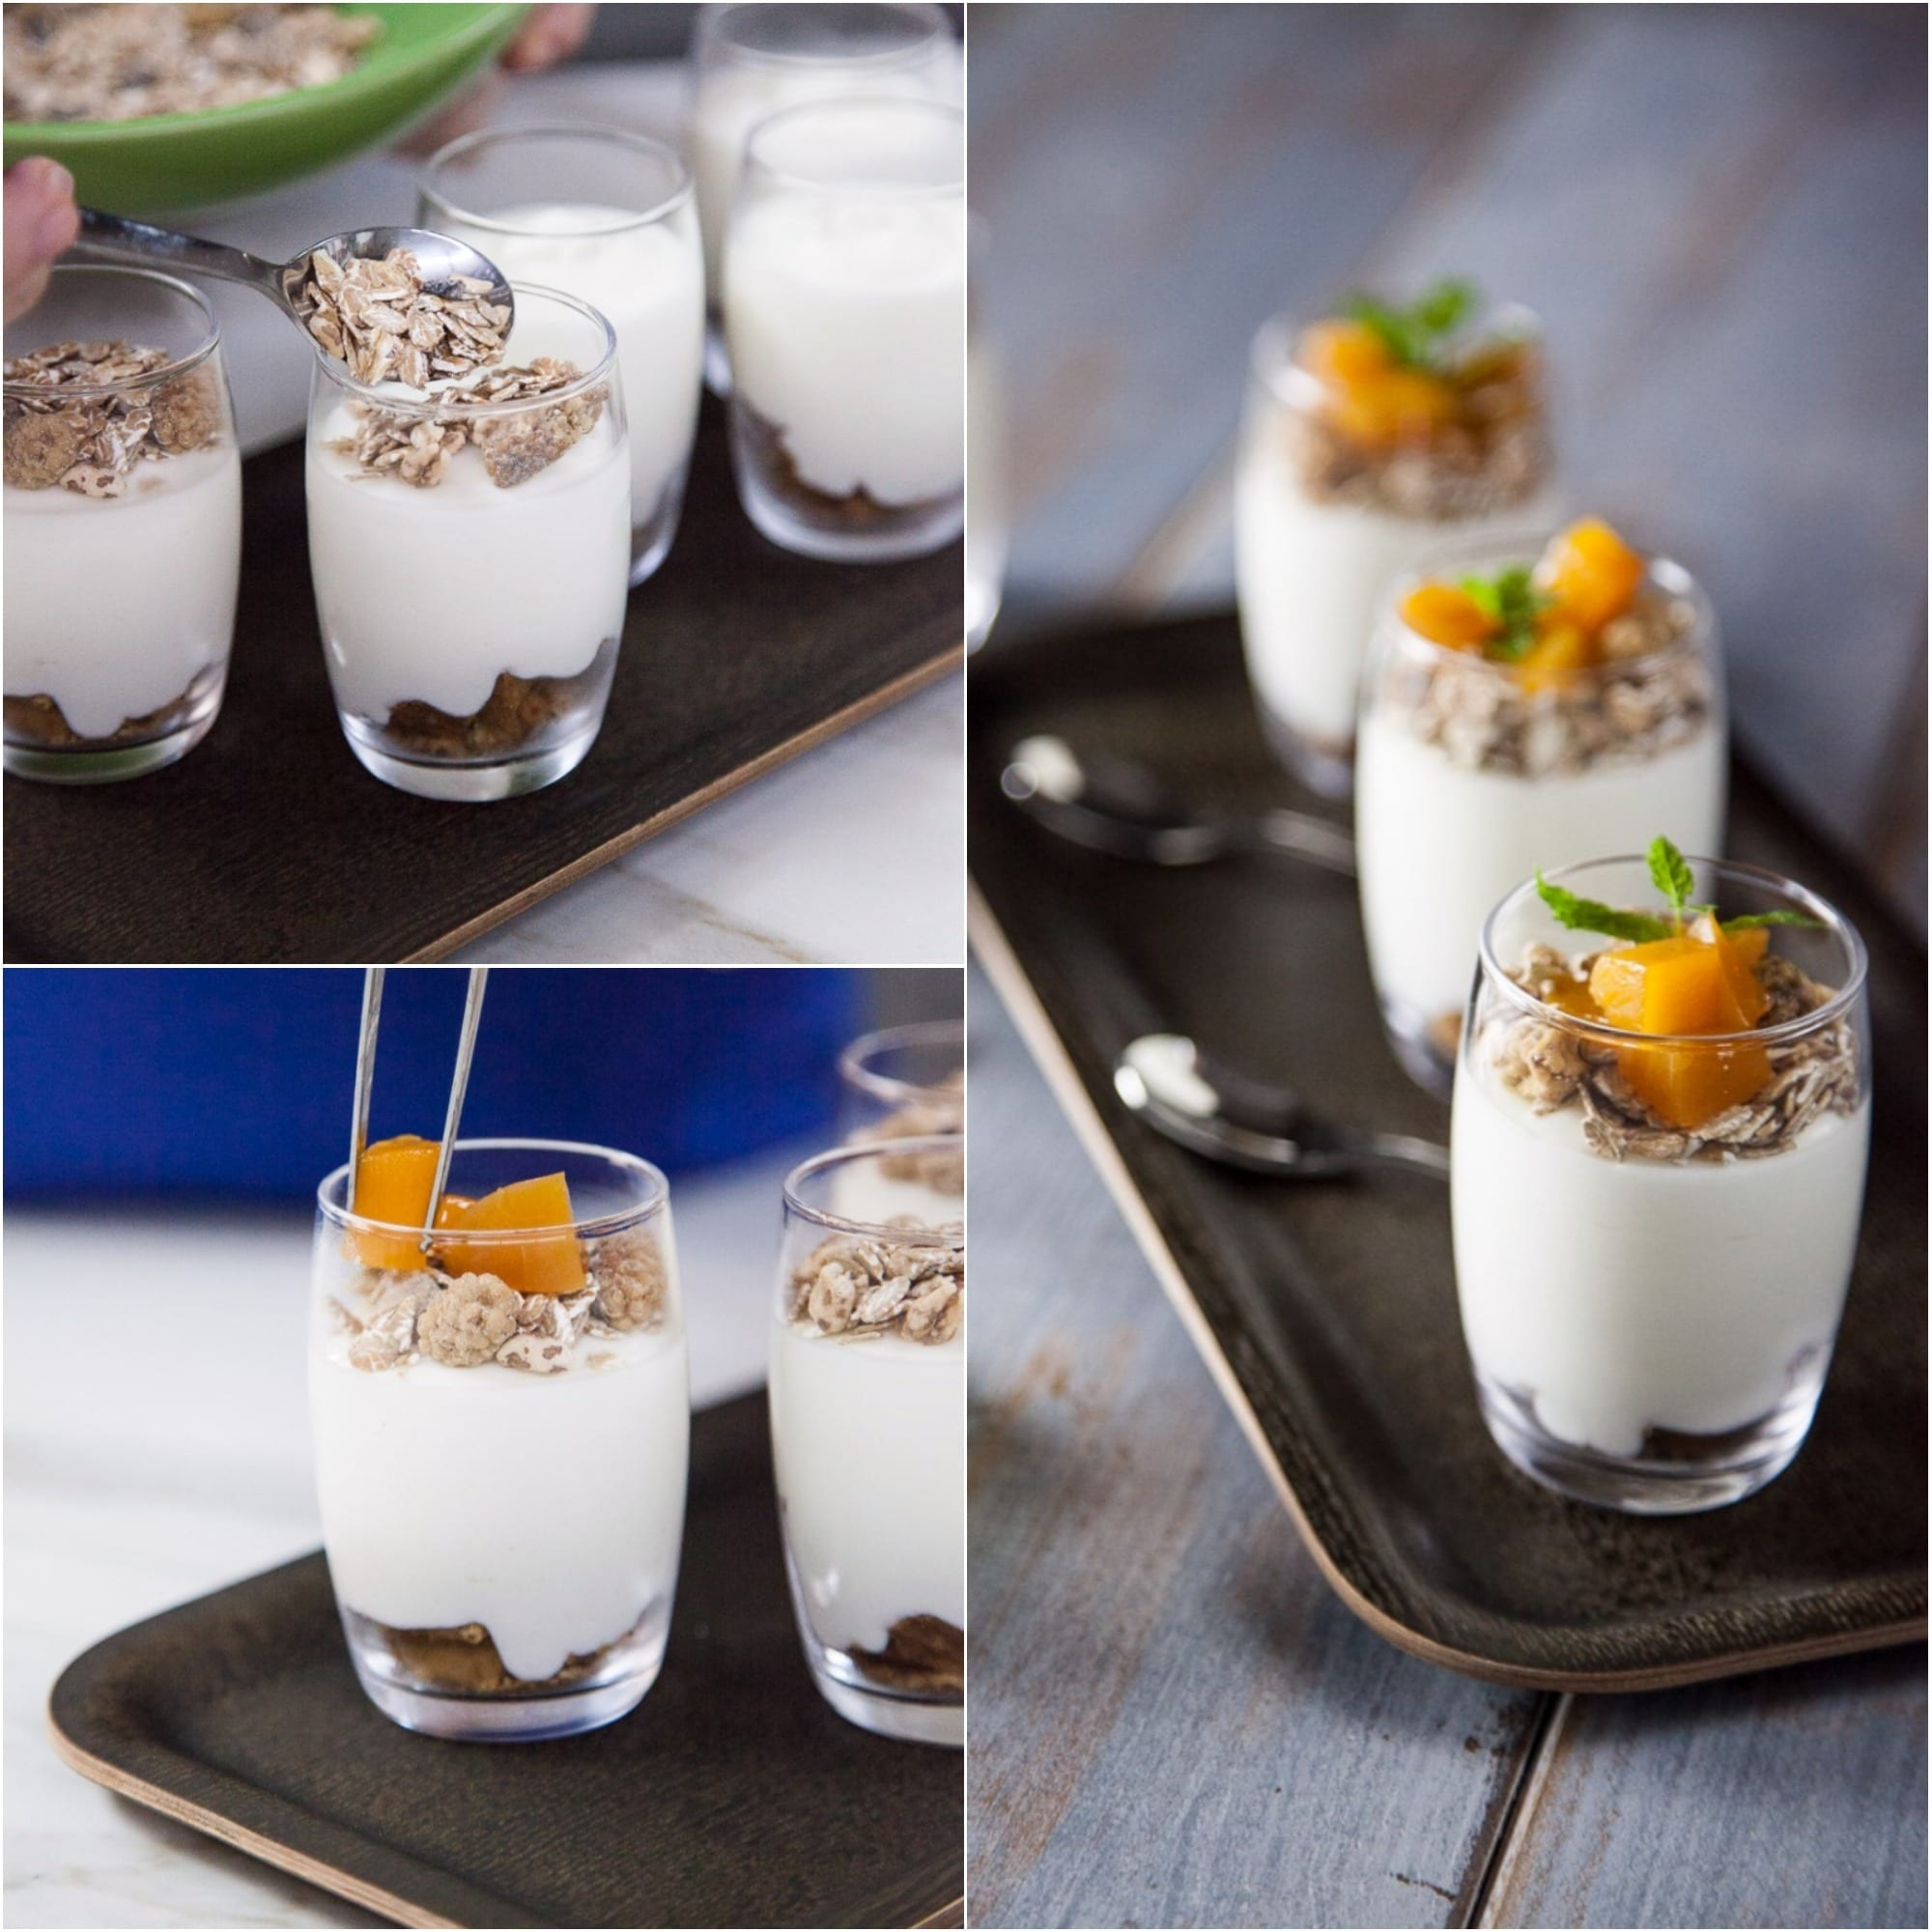 Mousse di yogurt con frutta